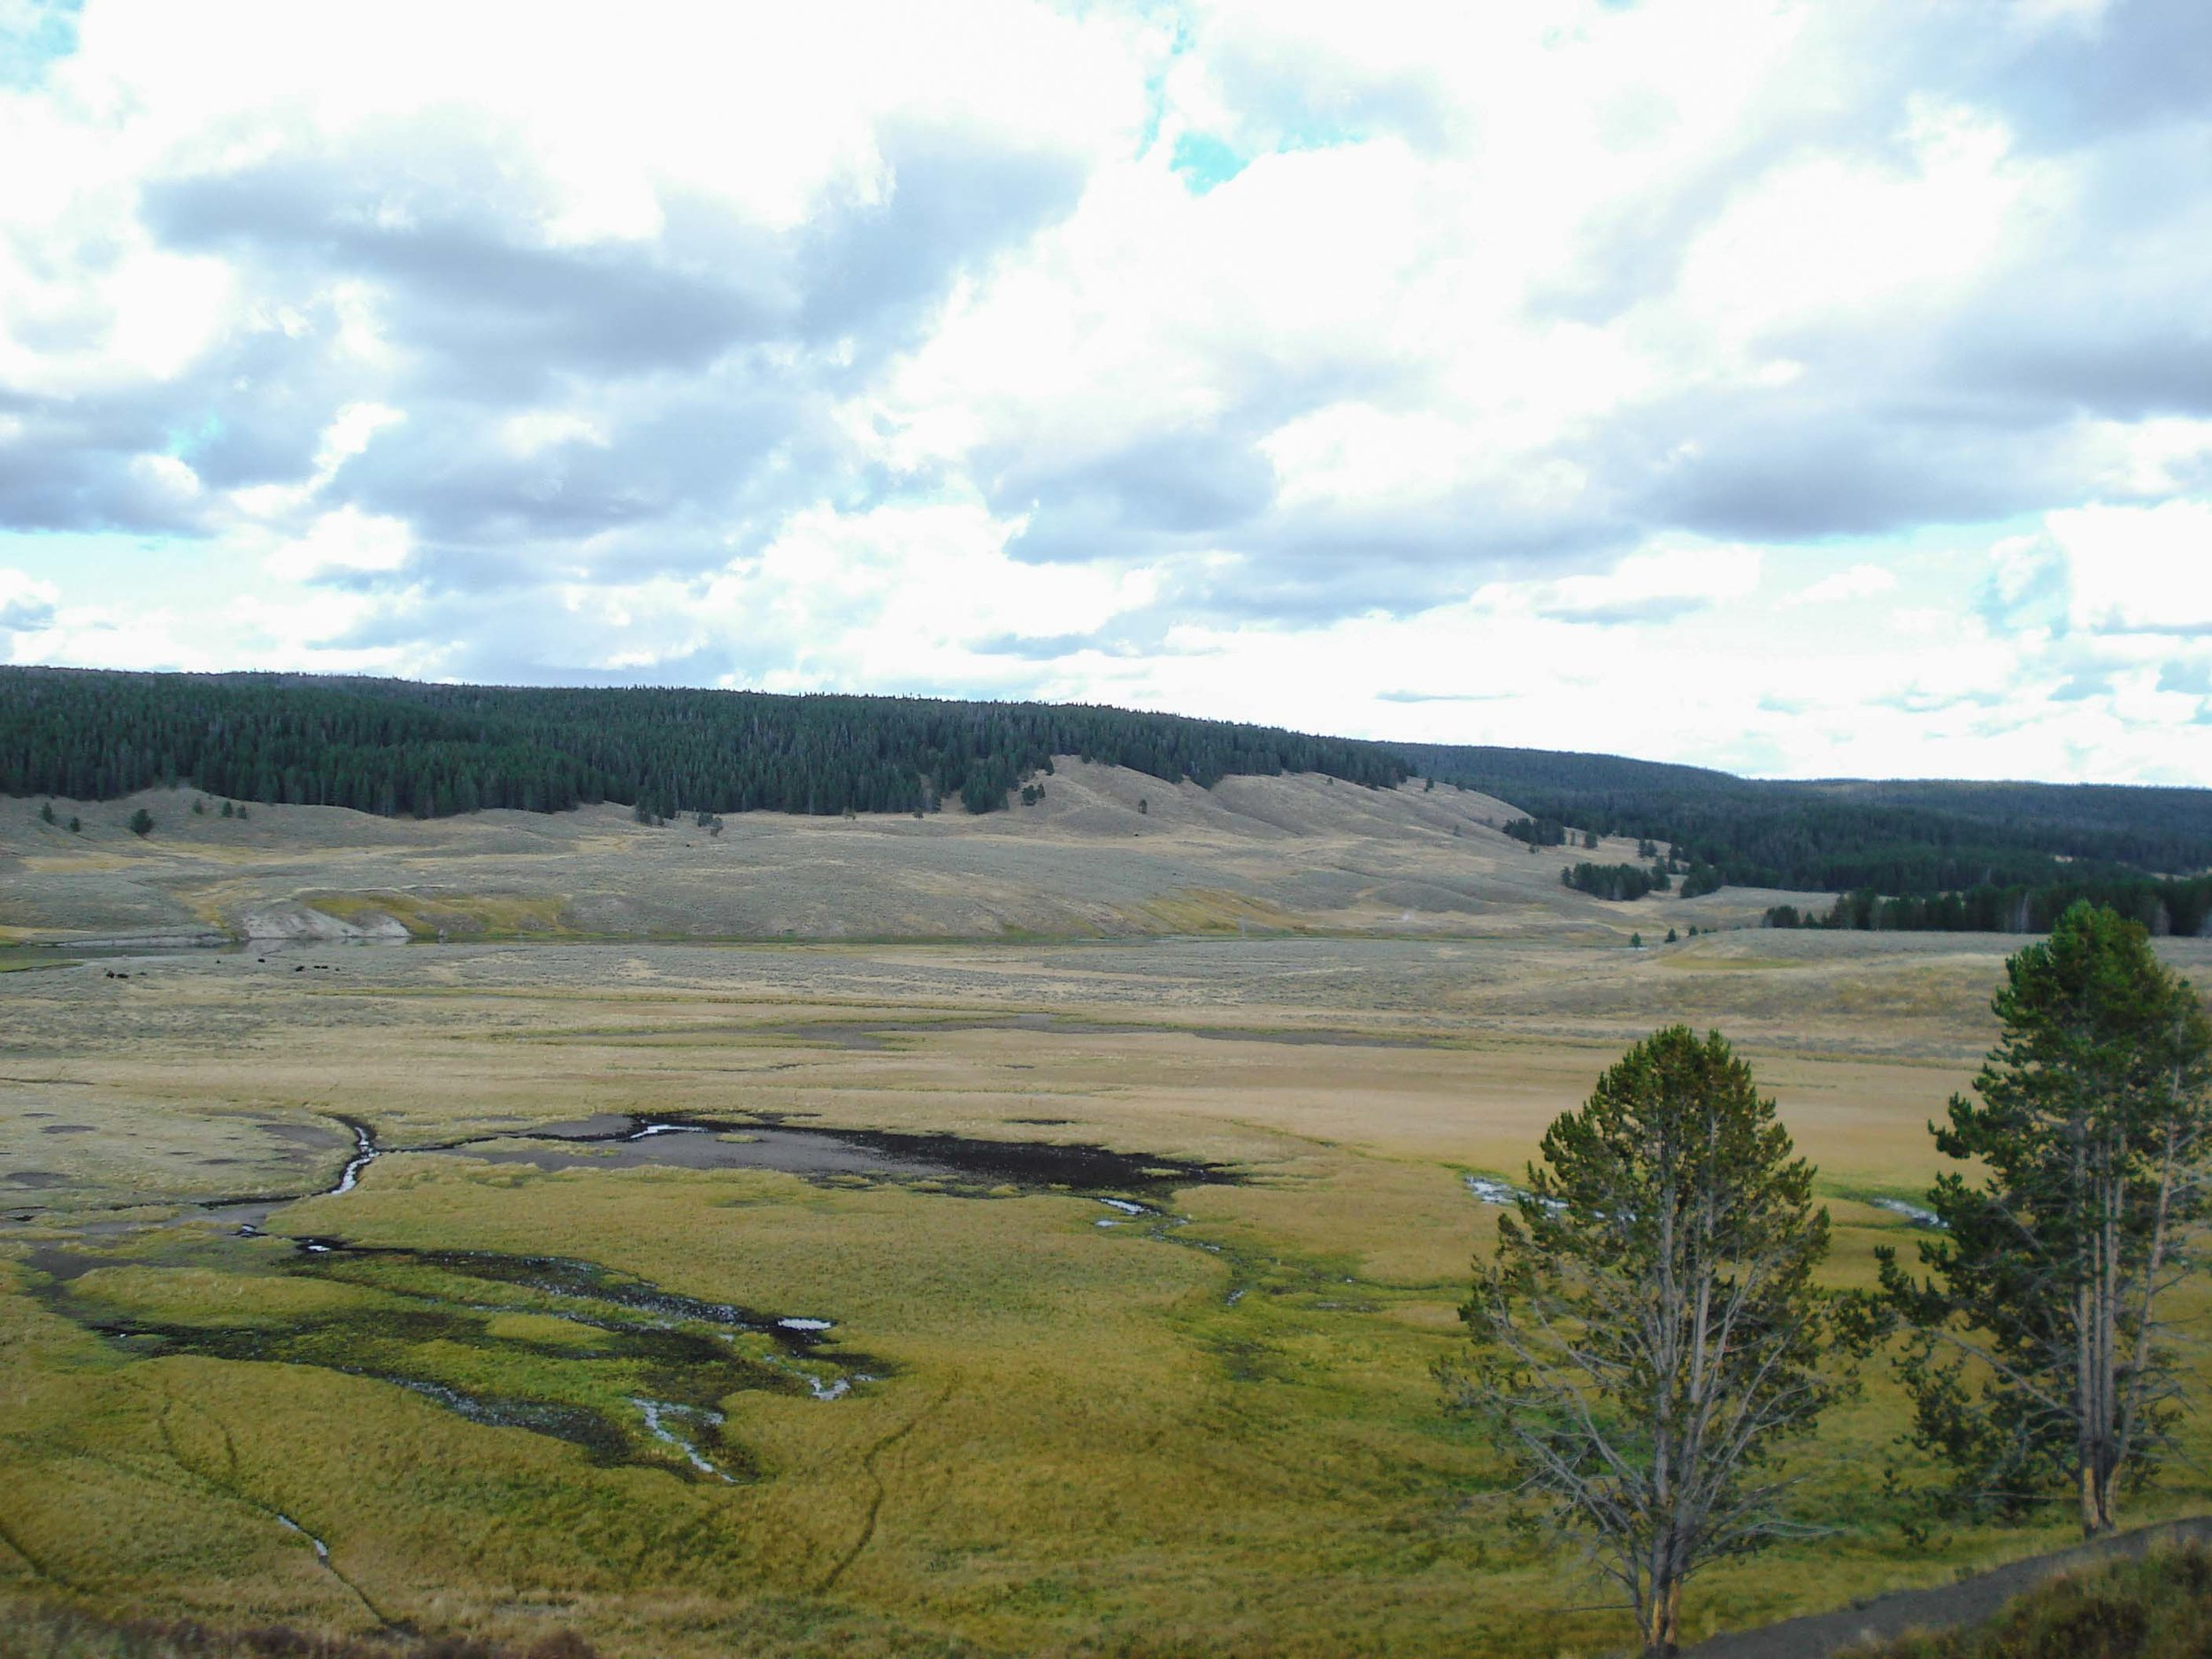 Lamar Valley | The Ultimate Travel Guide for Yellowstone National Park by Travel + Lifestyle blogger Bri Sul